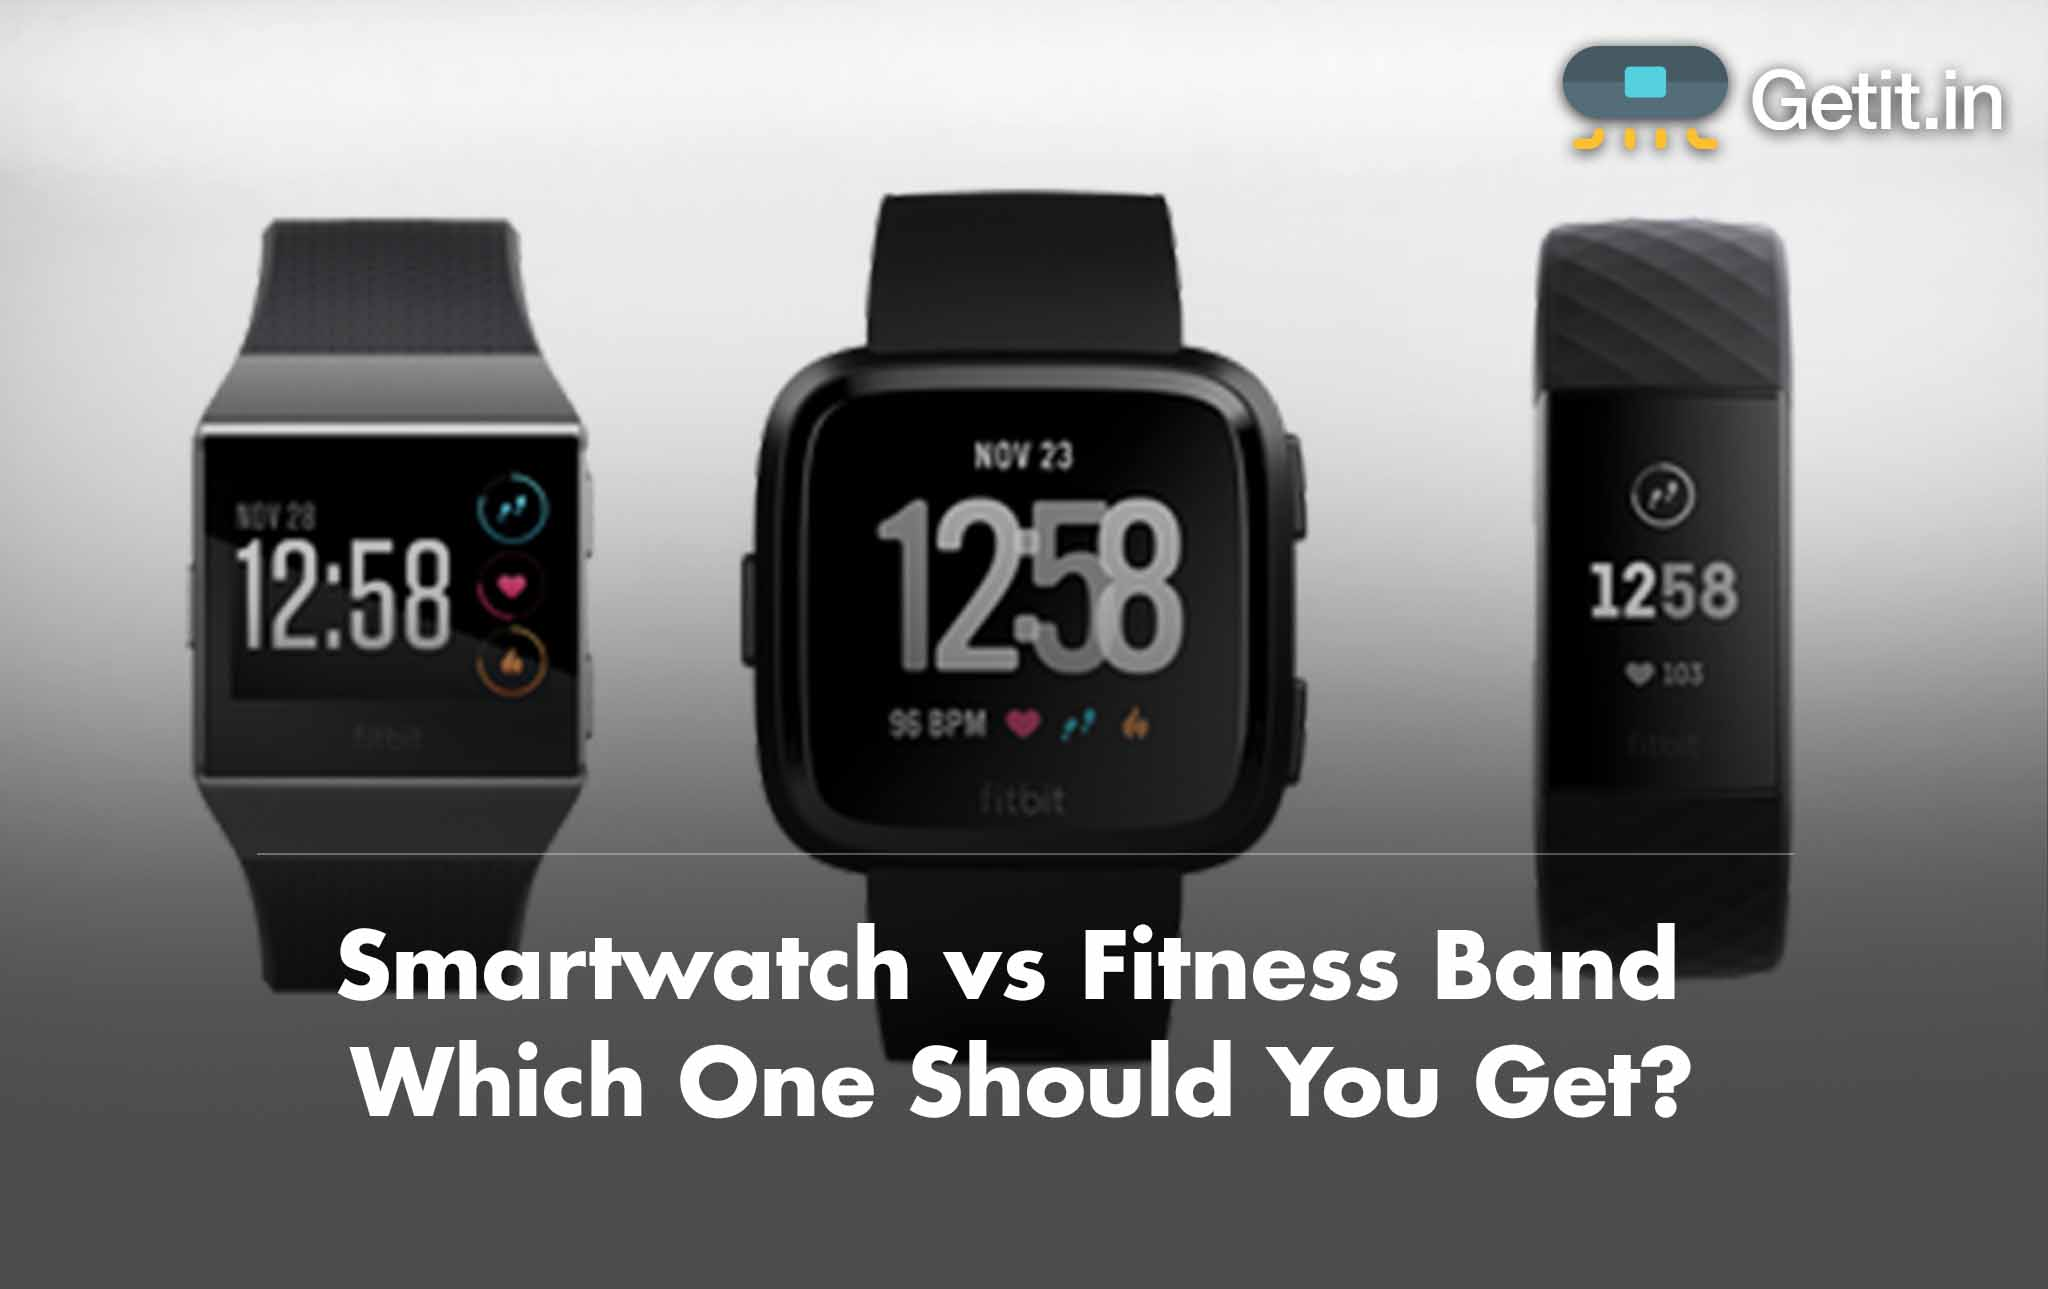 Smartwatch vs Fitness Band